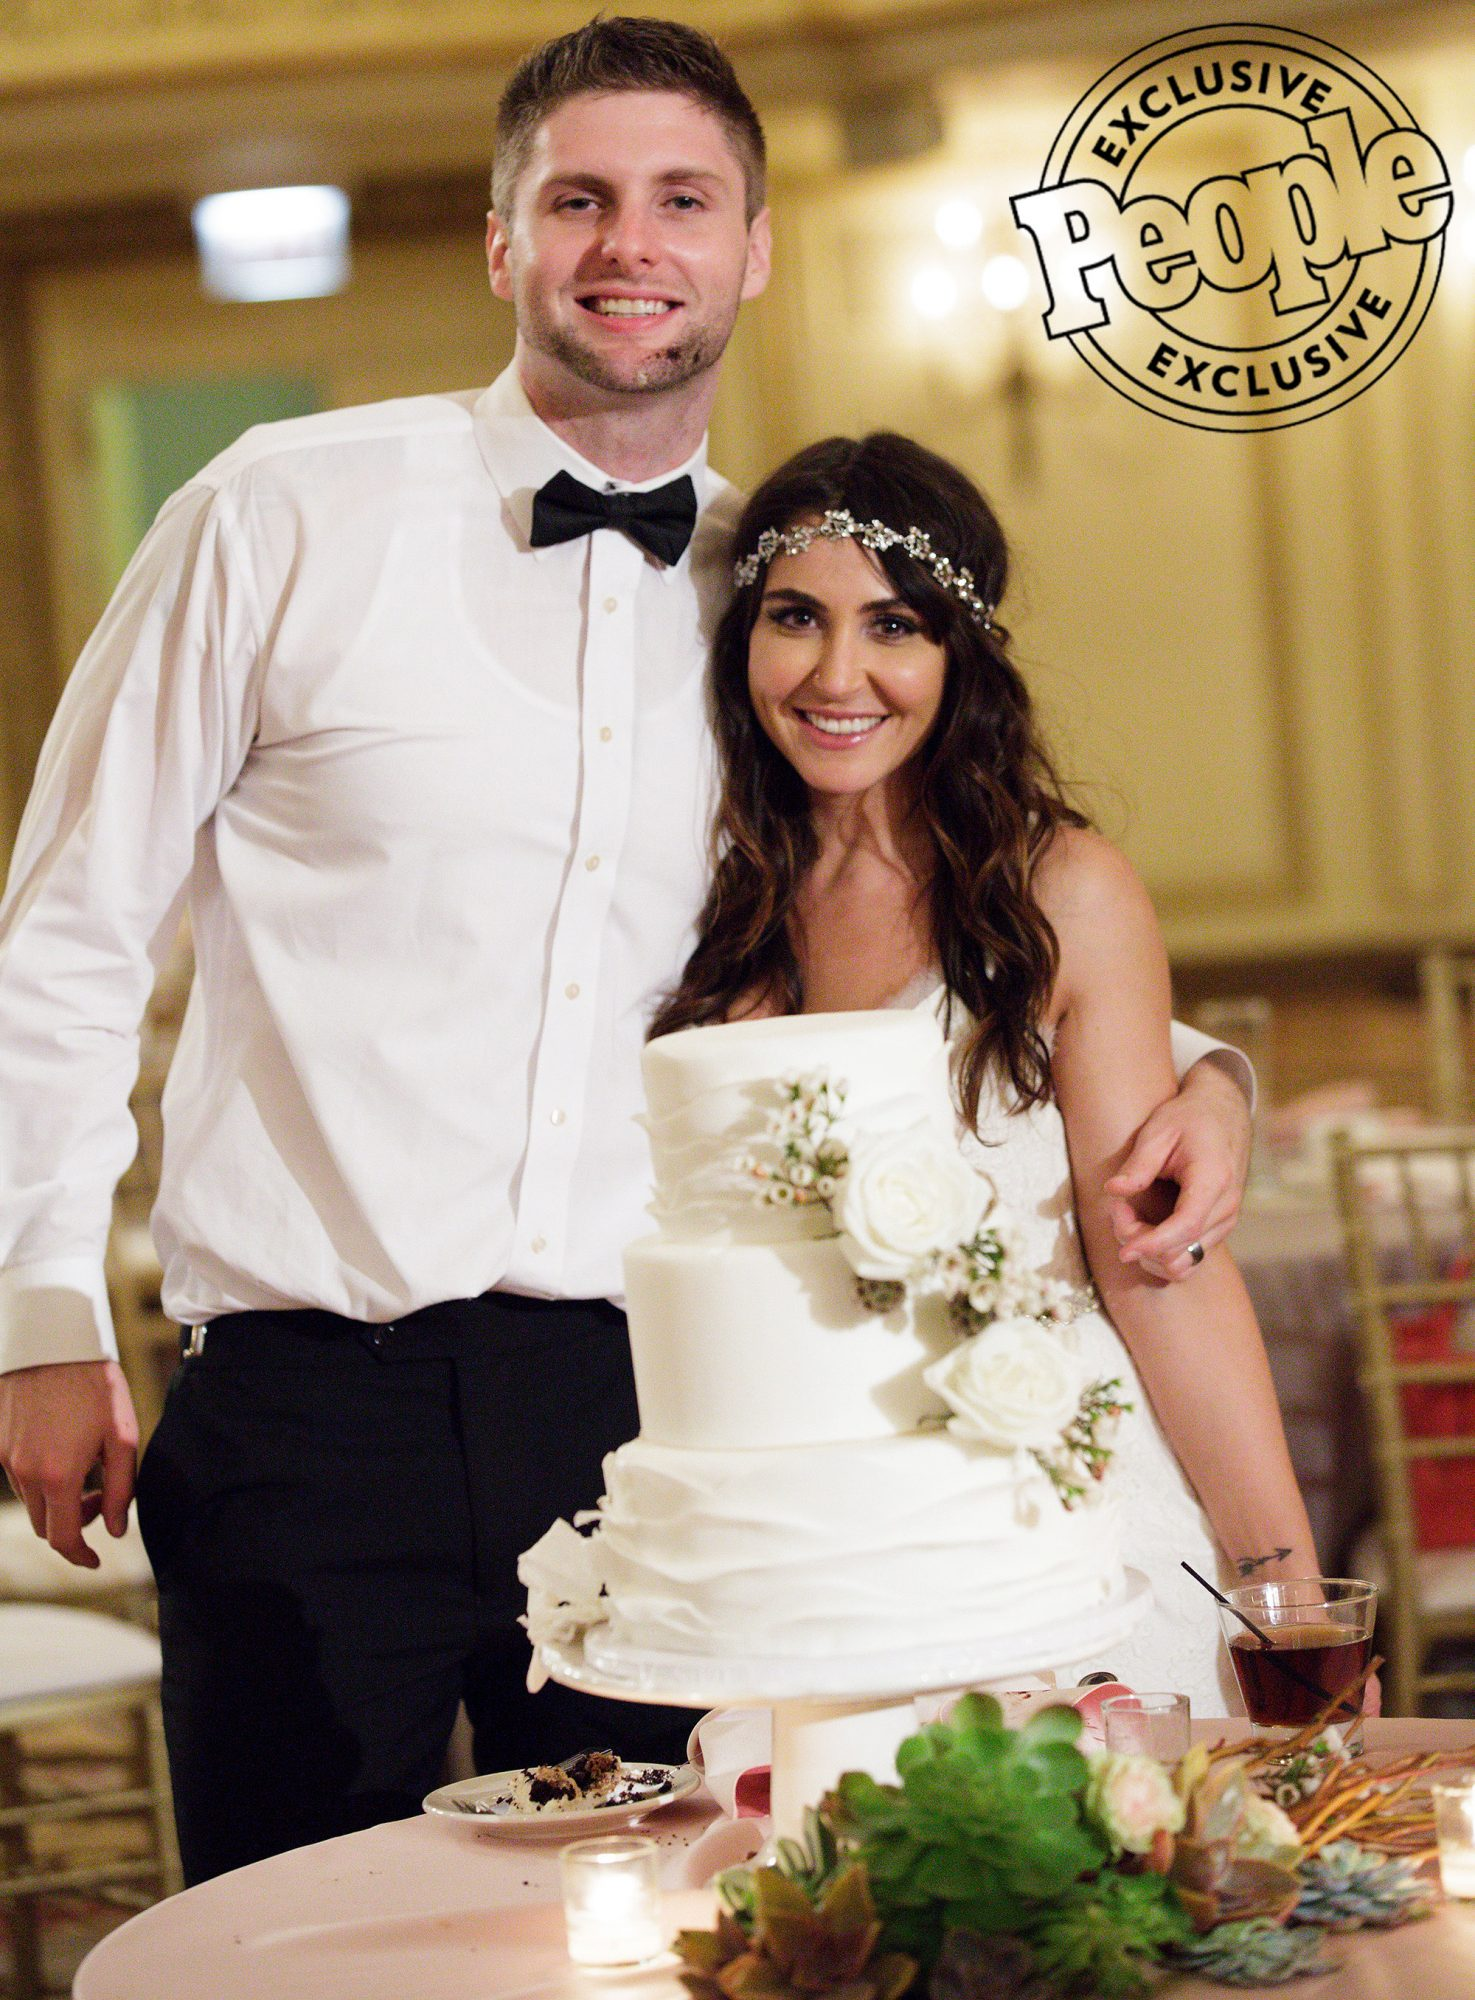 Married at first sight Danielle and CodyCredit: A&E Networks